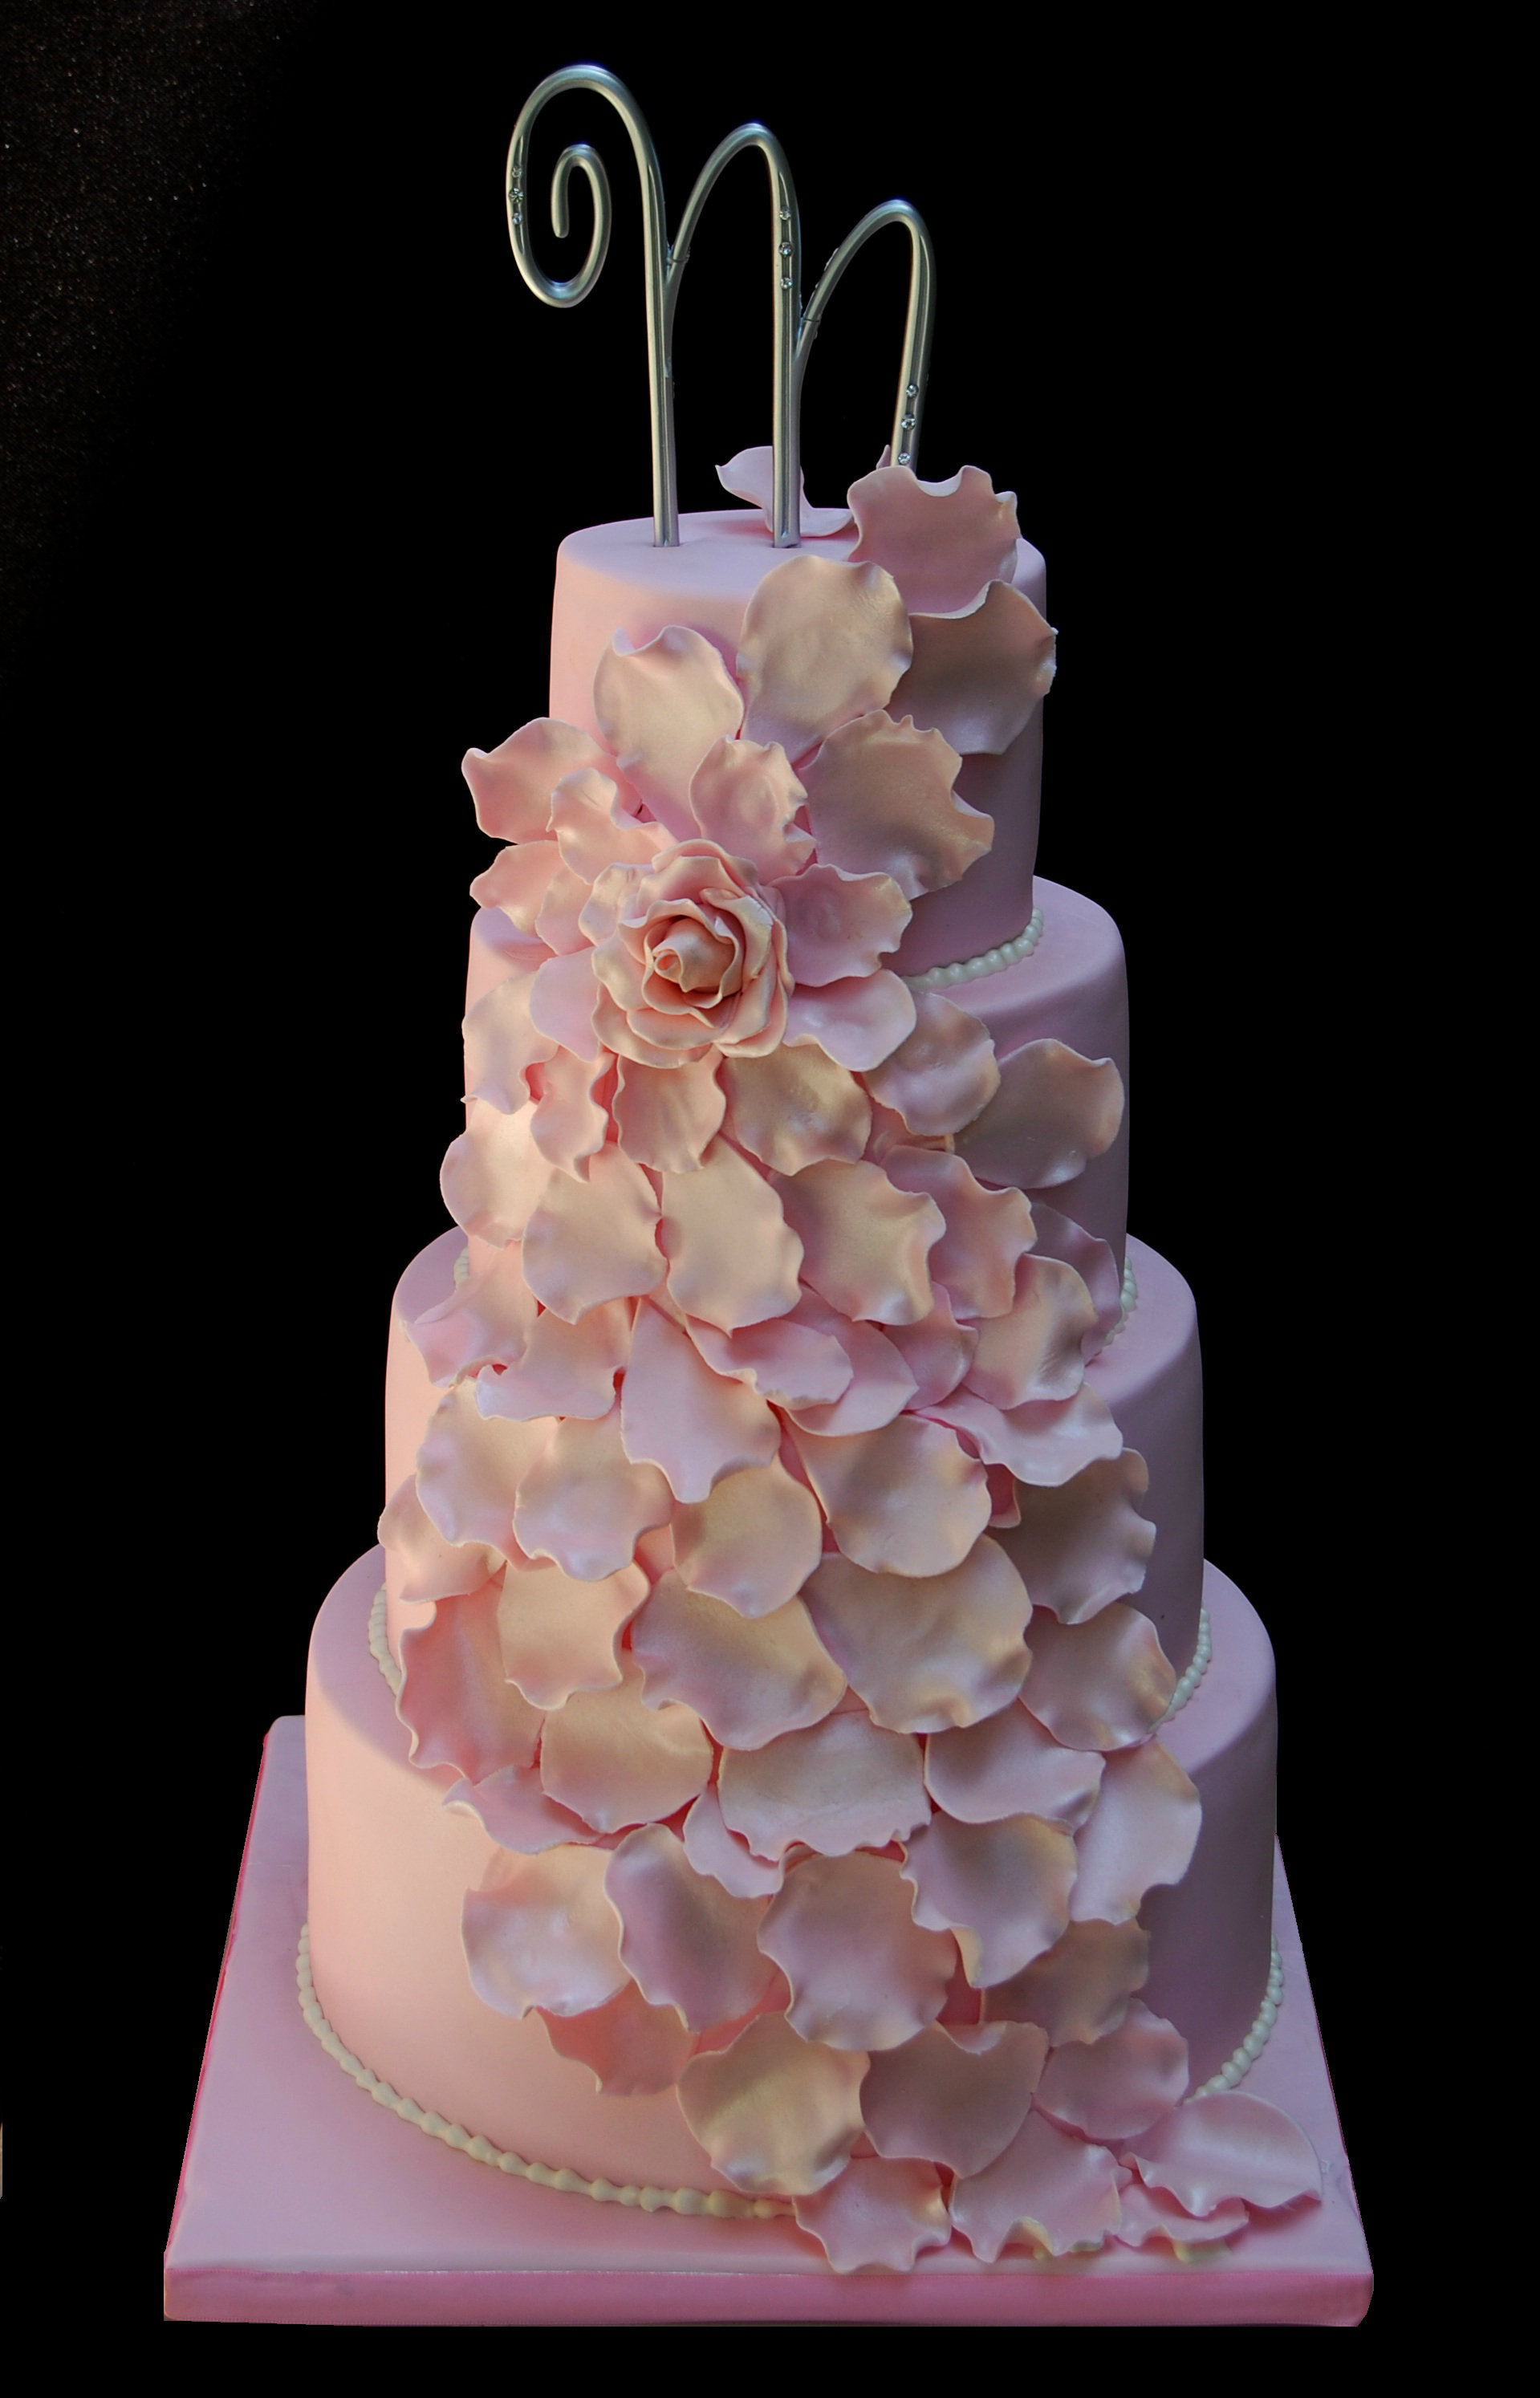 Cascading Petals wedding cake